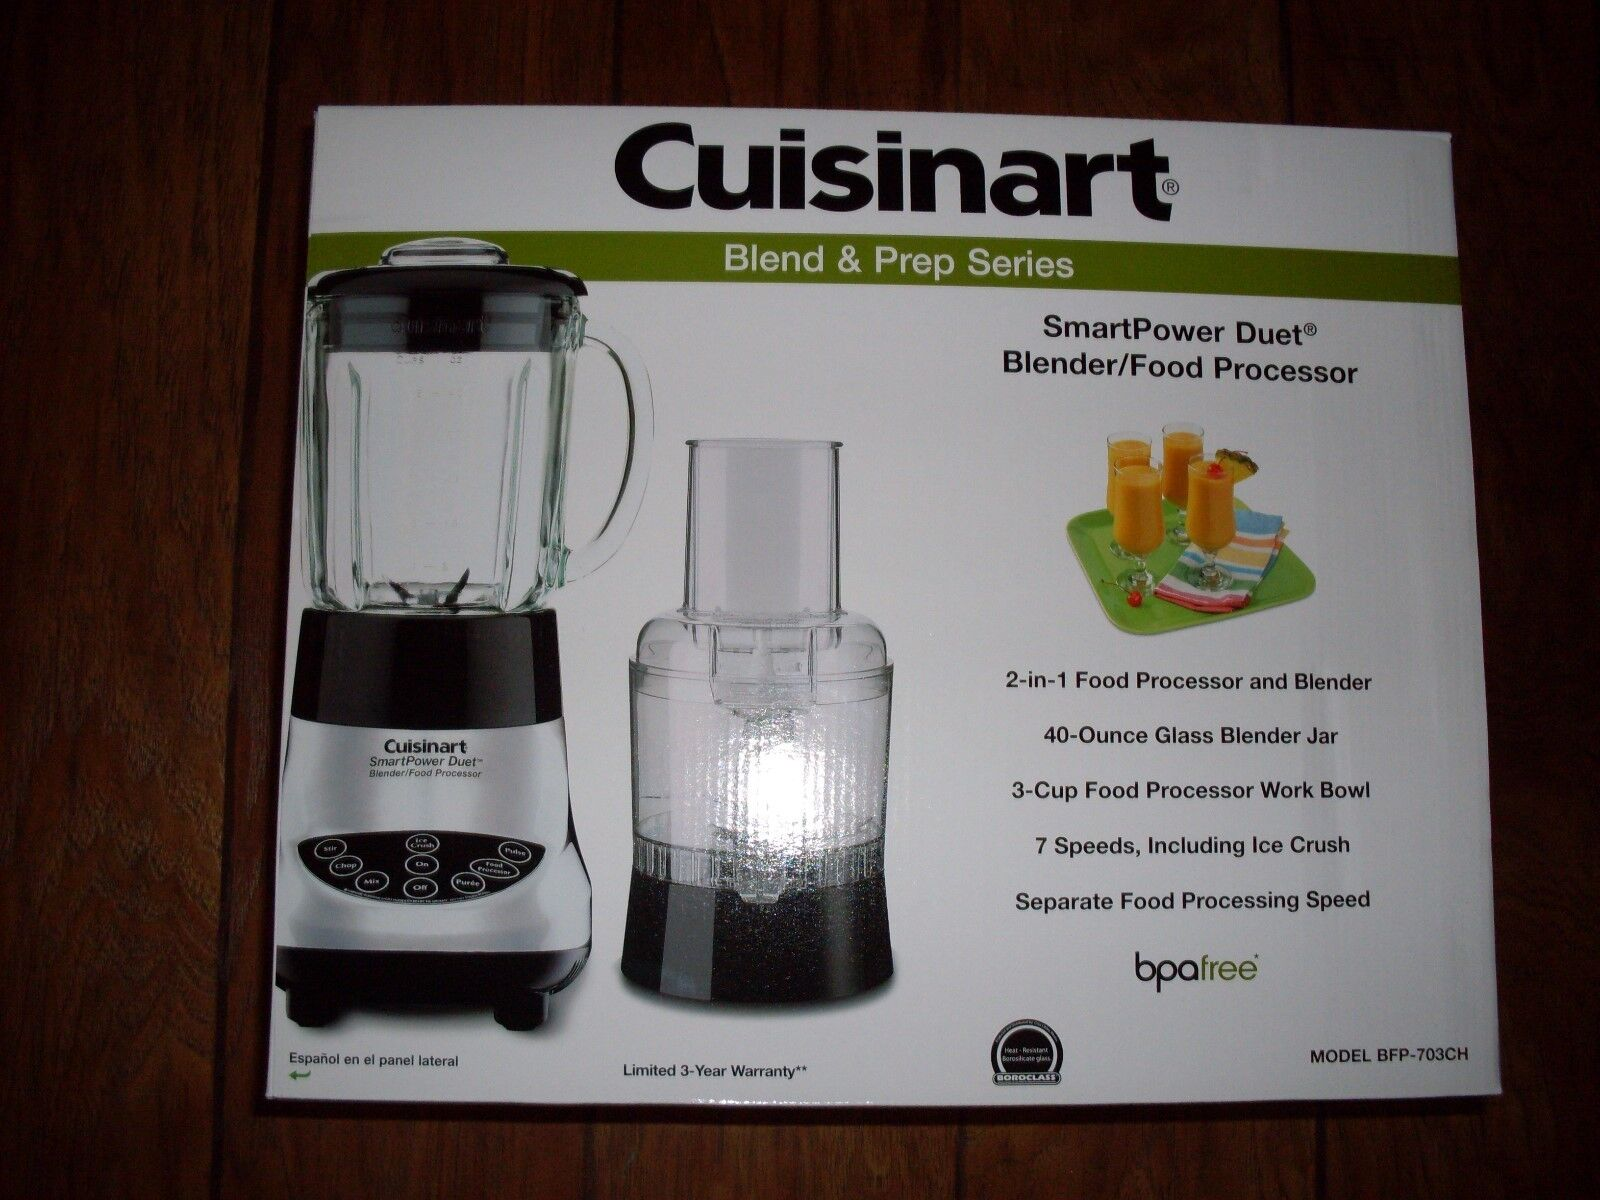 Cuisinart smartpower duet blender and food processor - You Re Almost Done Cuisinart Bfp 703ch Smartpower Duet Blender And Food Processor